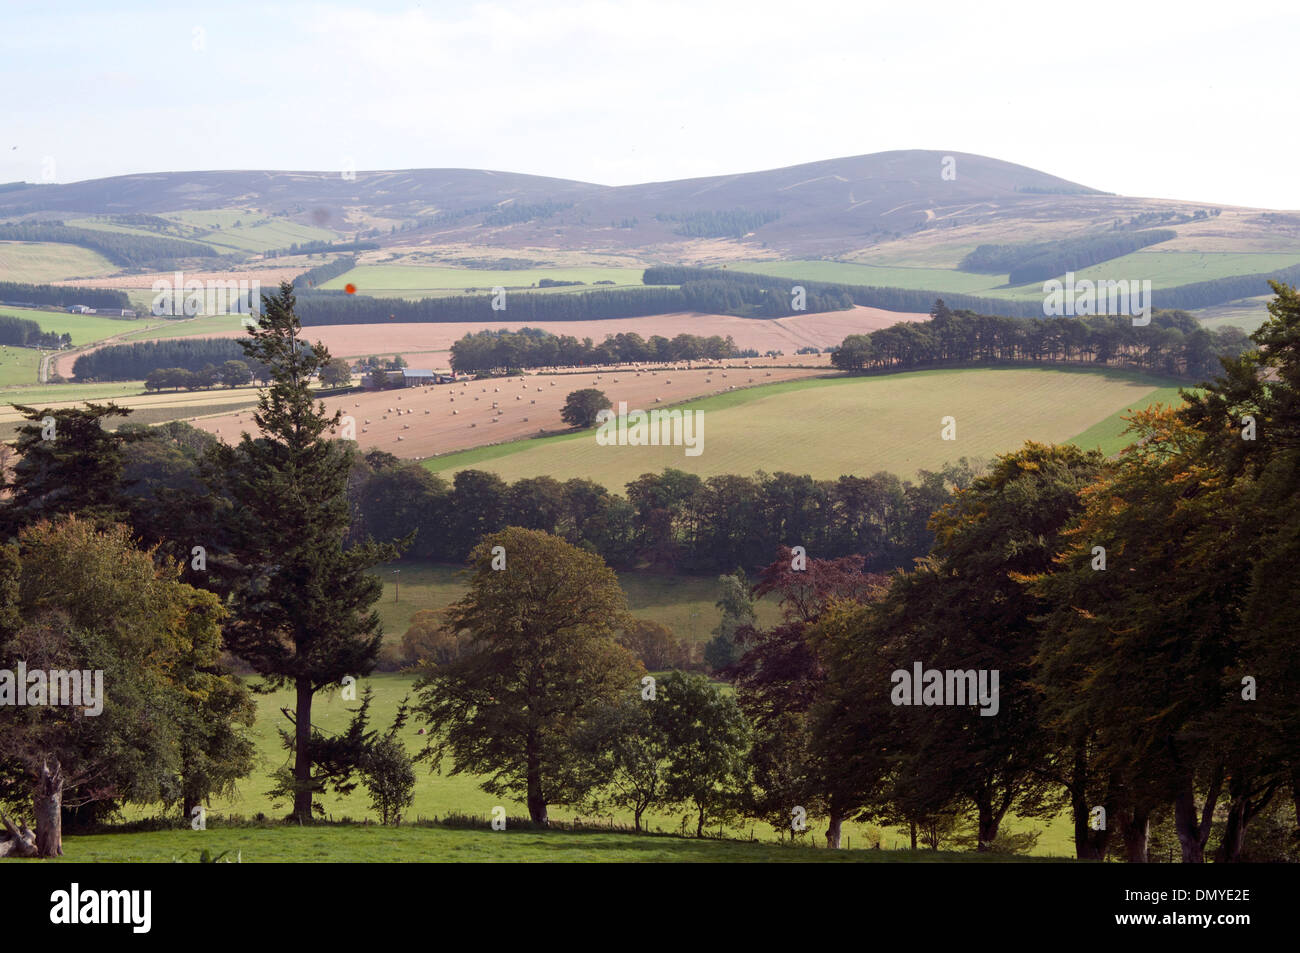 royal deeside aberdeen with countryside and farmland - Stock Image